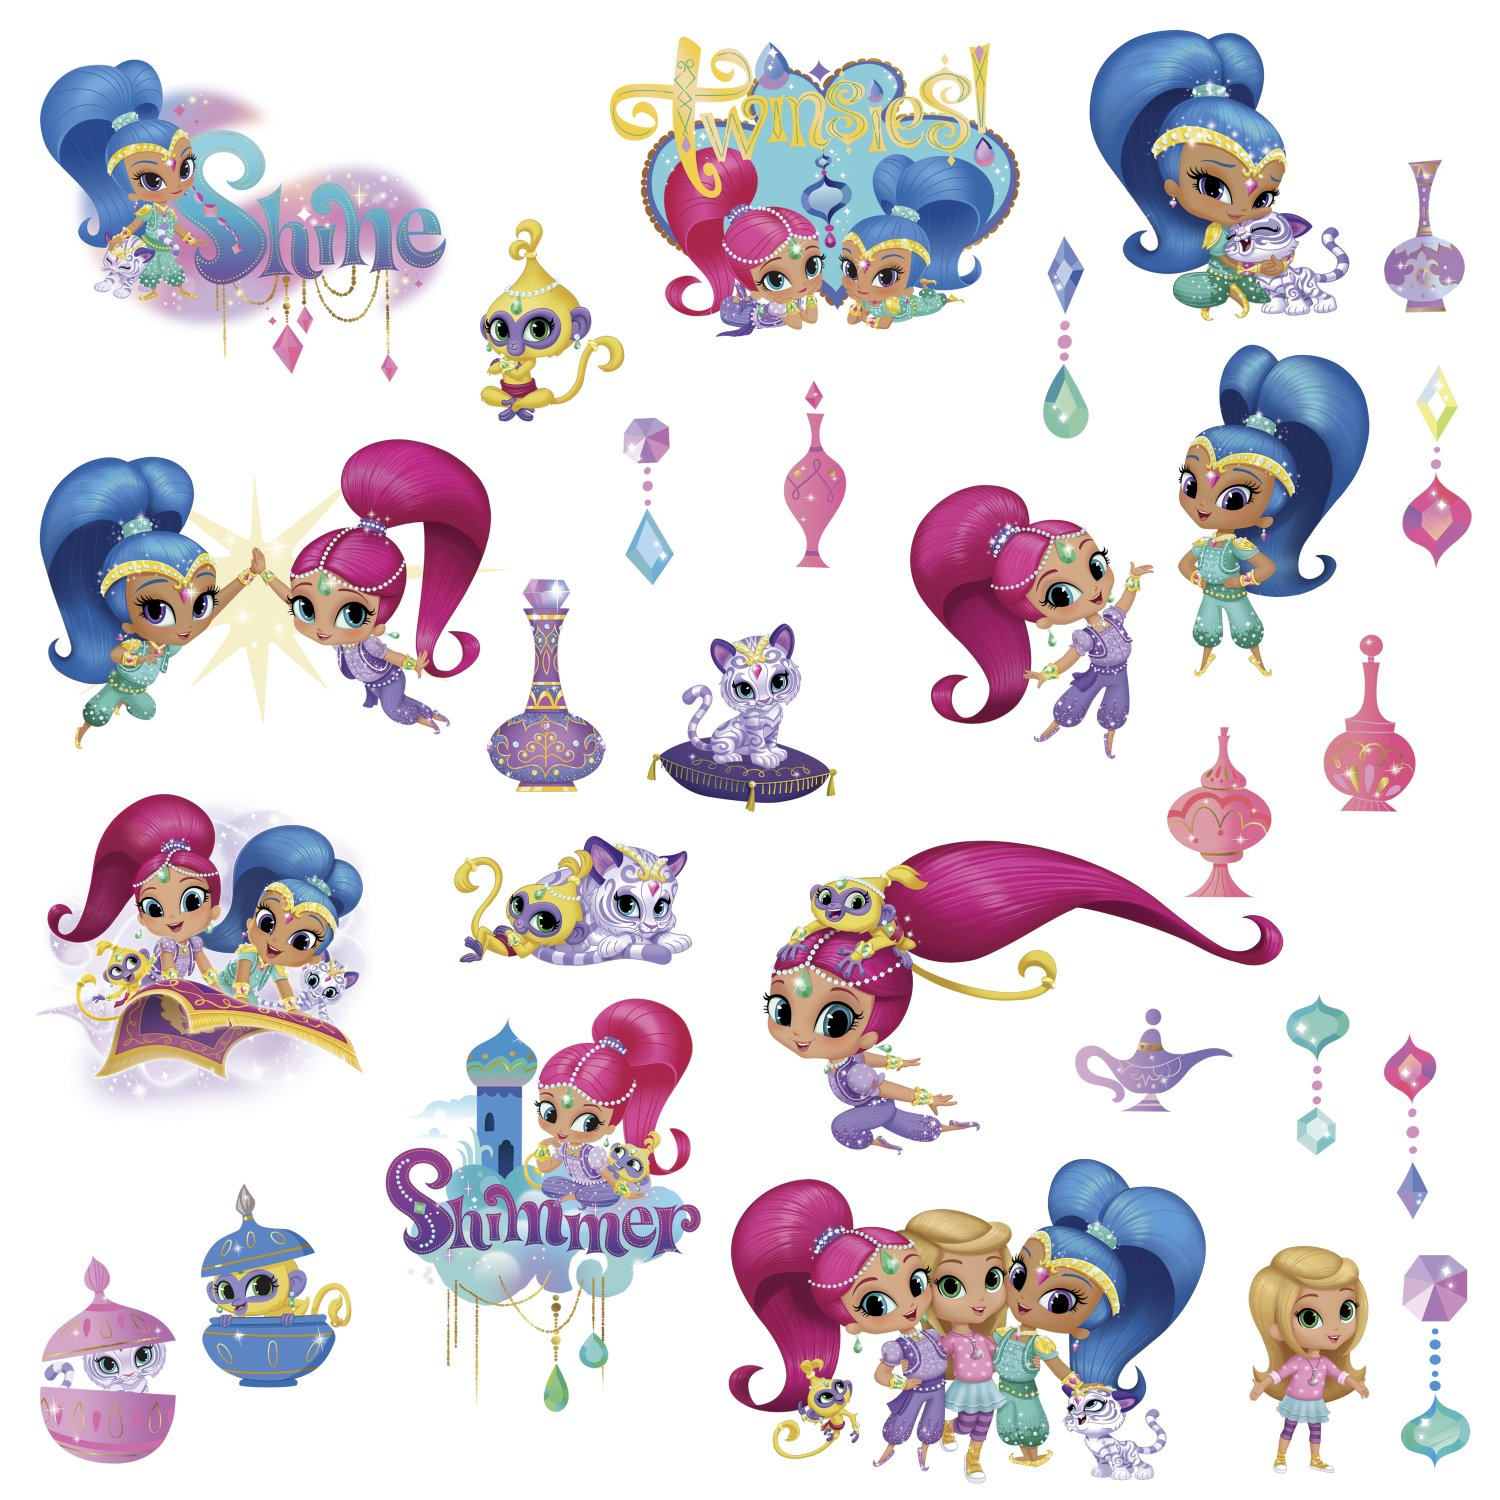 Roommates Shimmer Shine Peel Stick Wall Decals